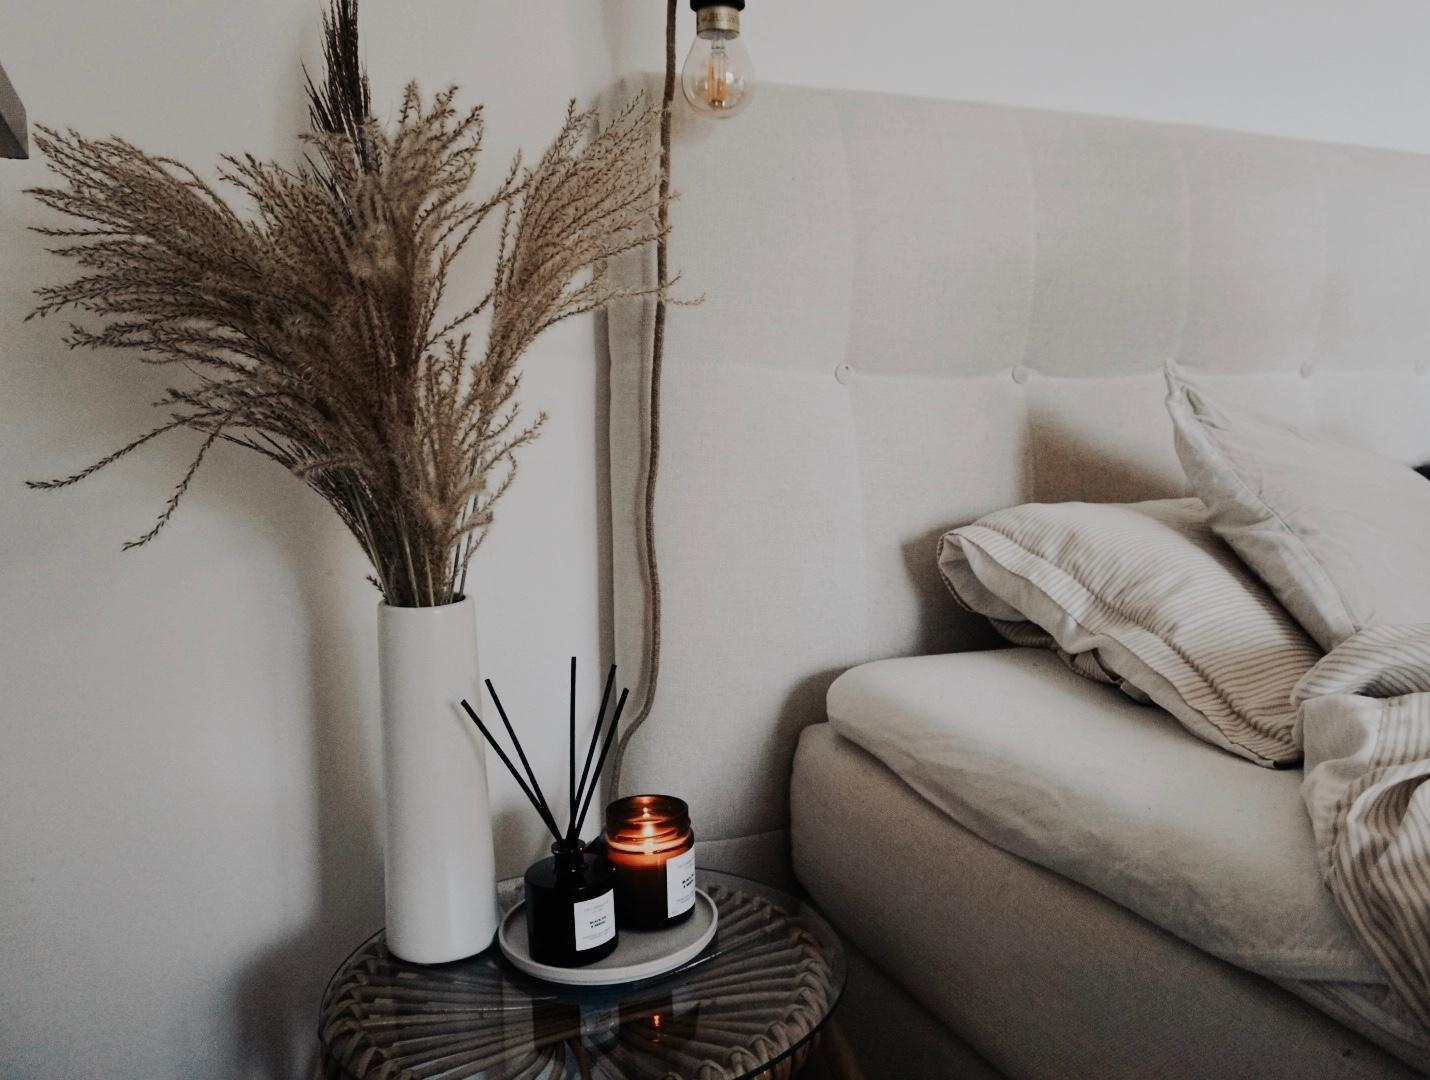 BEDROOM! #couchliebt #boho #scandi #interior #scandiboho #home #bedroom